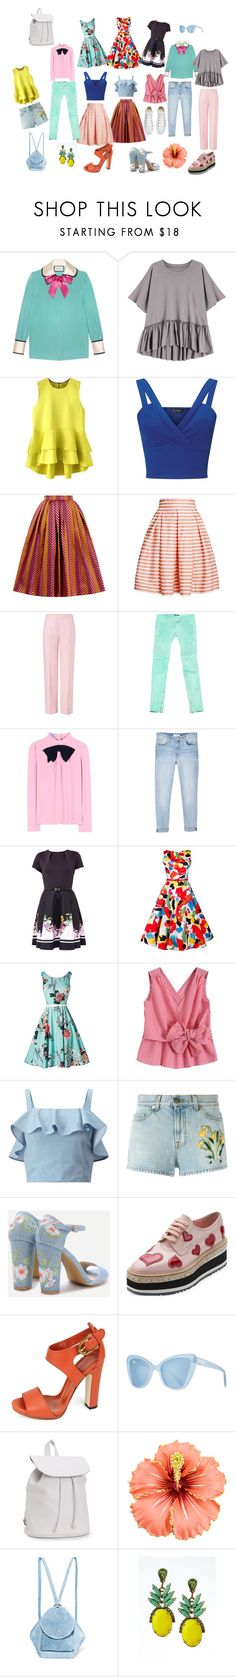 """Baby-girl+ sport"" by explorer-149077476910 on Polyvore featuring мода, Gucci, Miss Selfridge, House of Holland, Rumour London, ESCADA, Balmain, Prada, MANGO и Ted Baker"